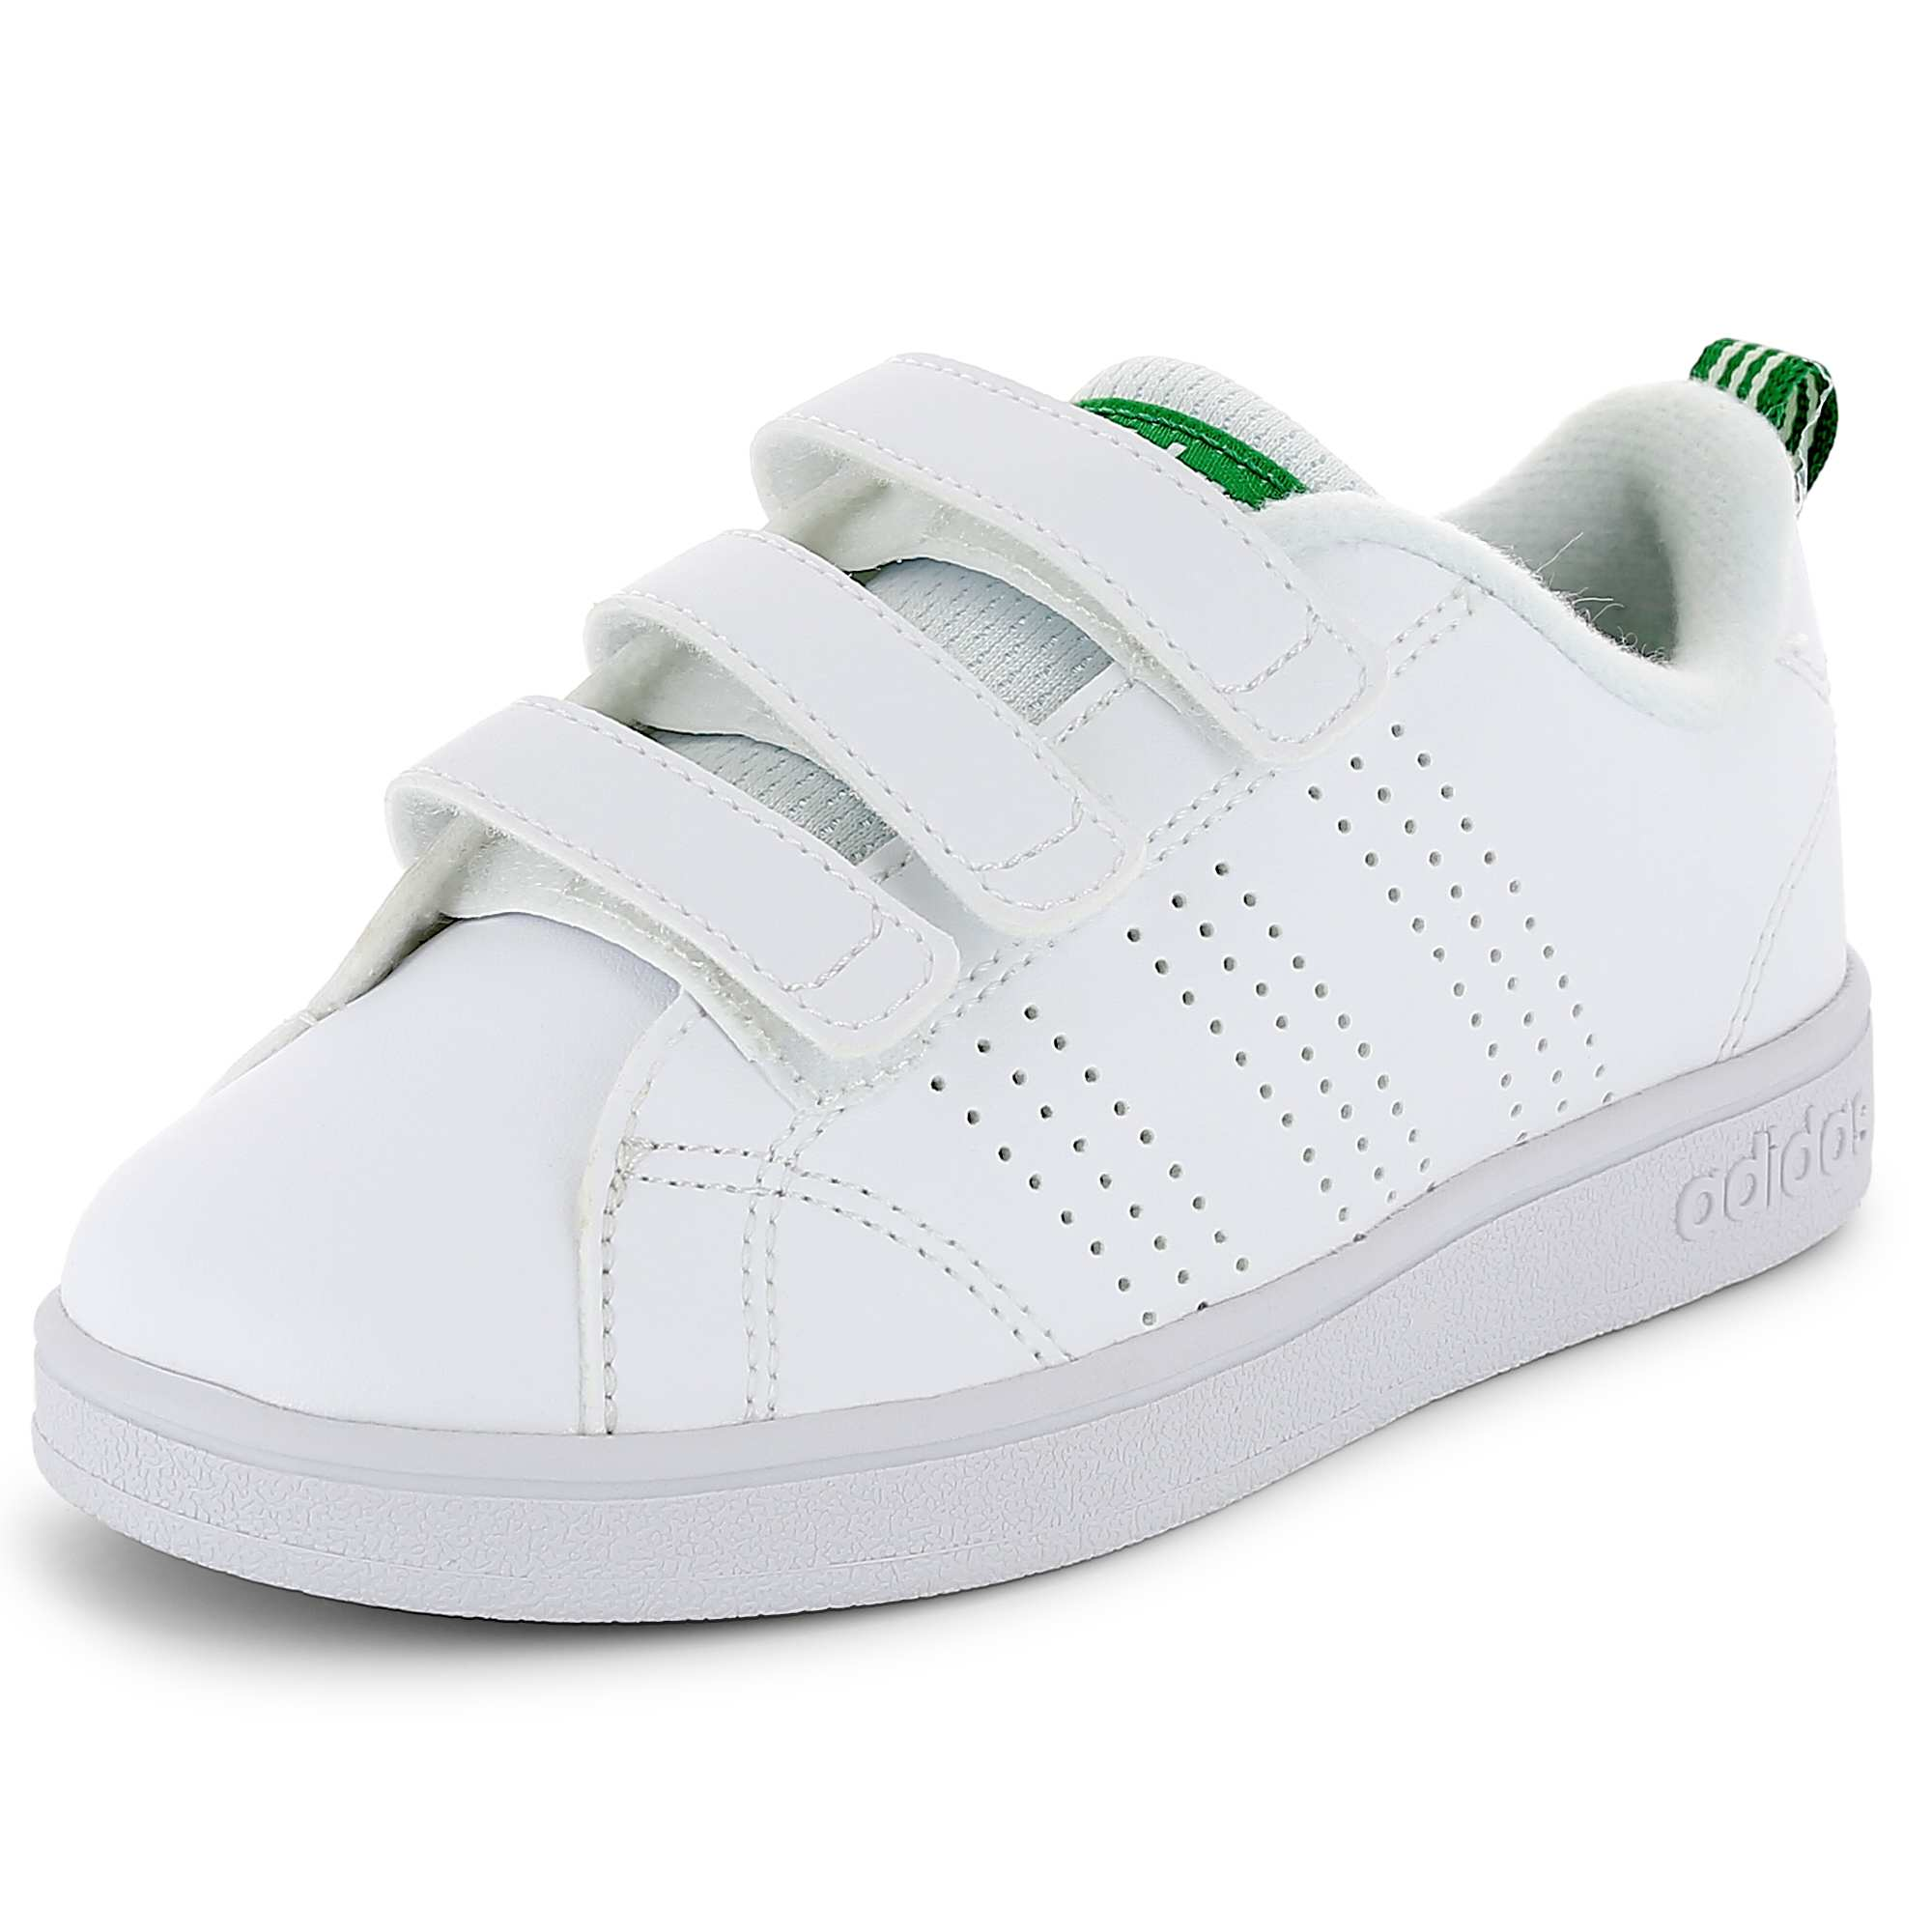 new arrival 36a54 bd93e Baskets Adidas VS Advantage Clean à scratchs blancvert Garçon. Loading  zoom